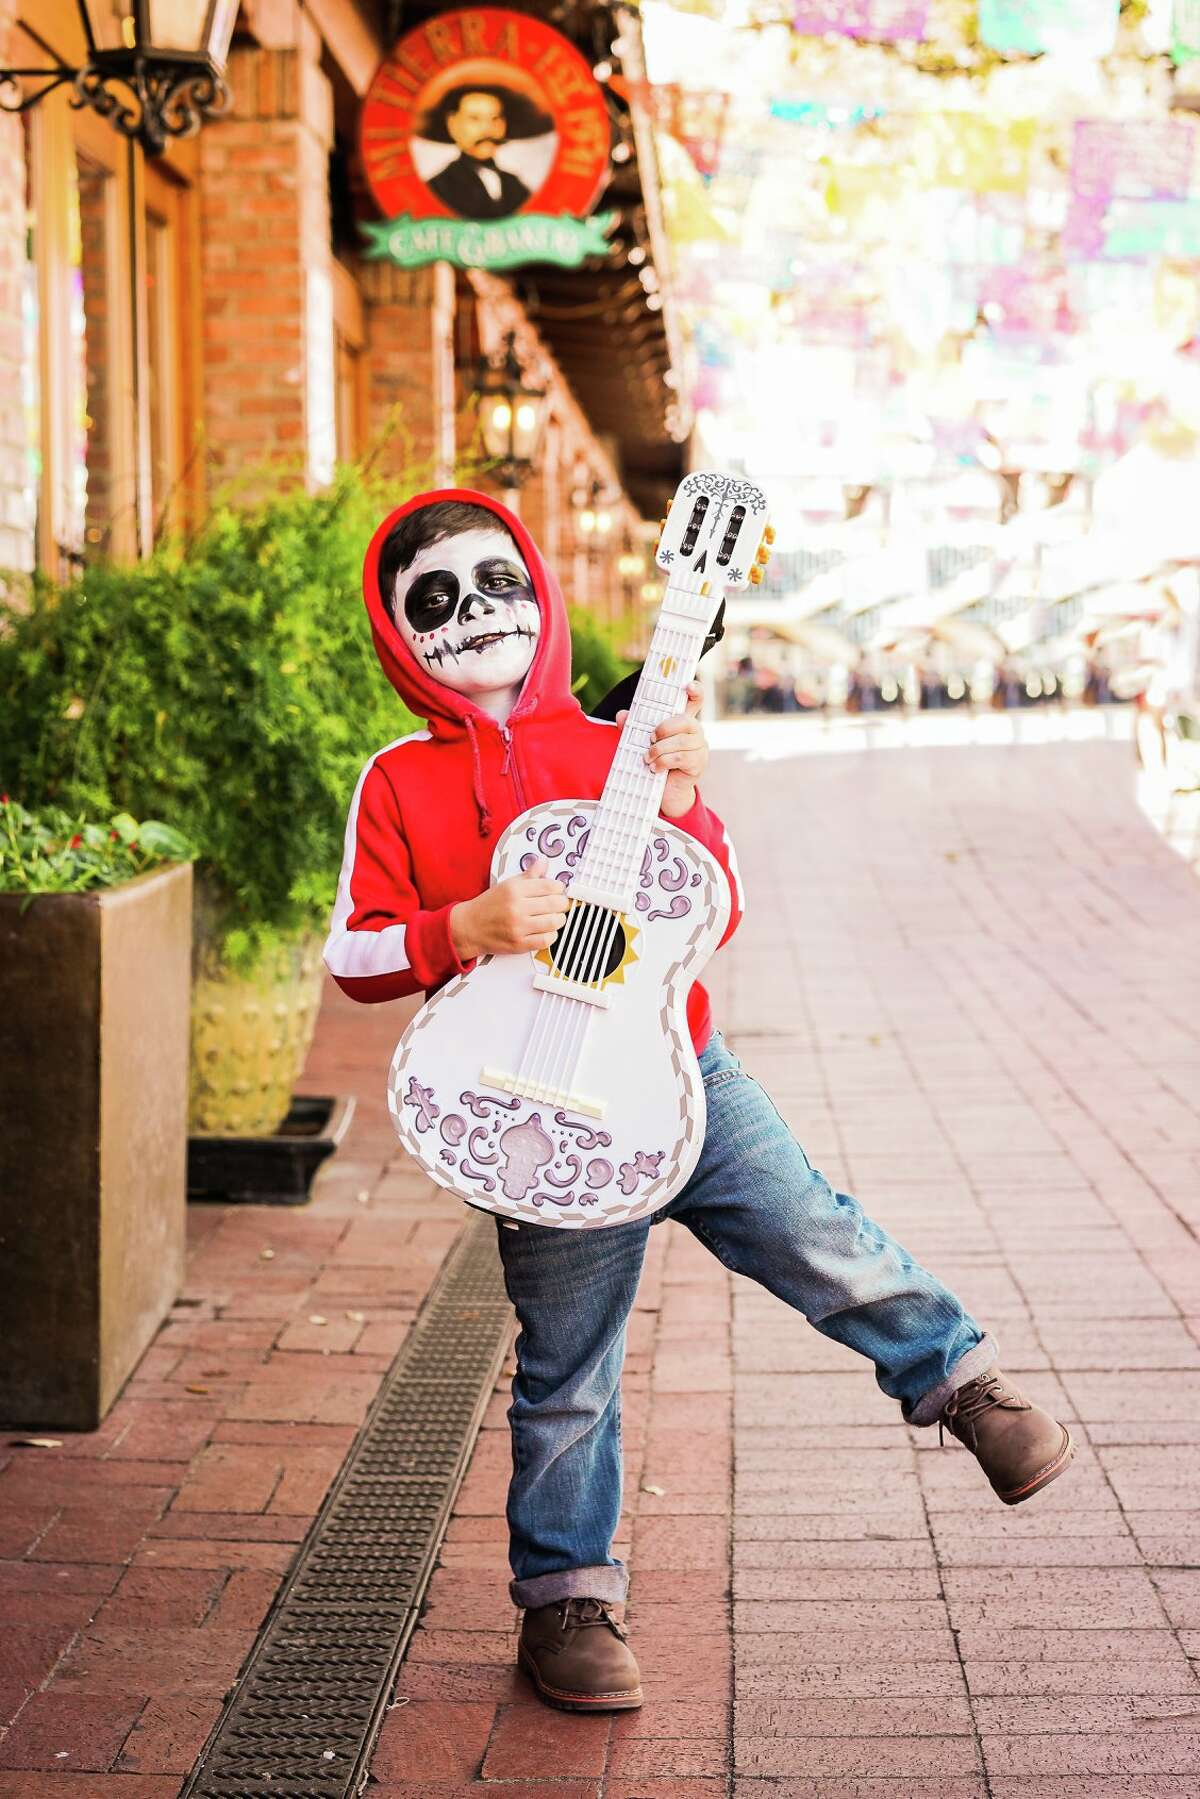 Photographer and owner of Pop of Color Images Megan Bowling took the photos of 3-year-old Brandon Urbanczyk dressed as the movie's main character Miguel.